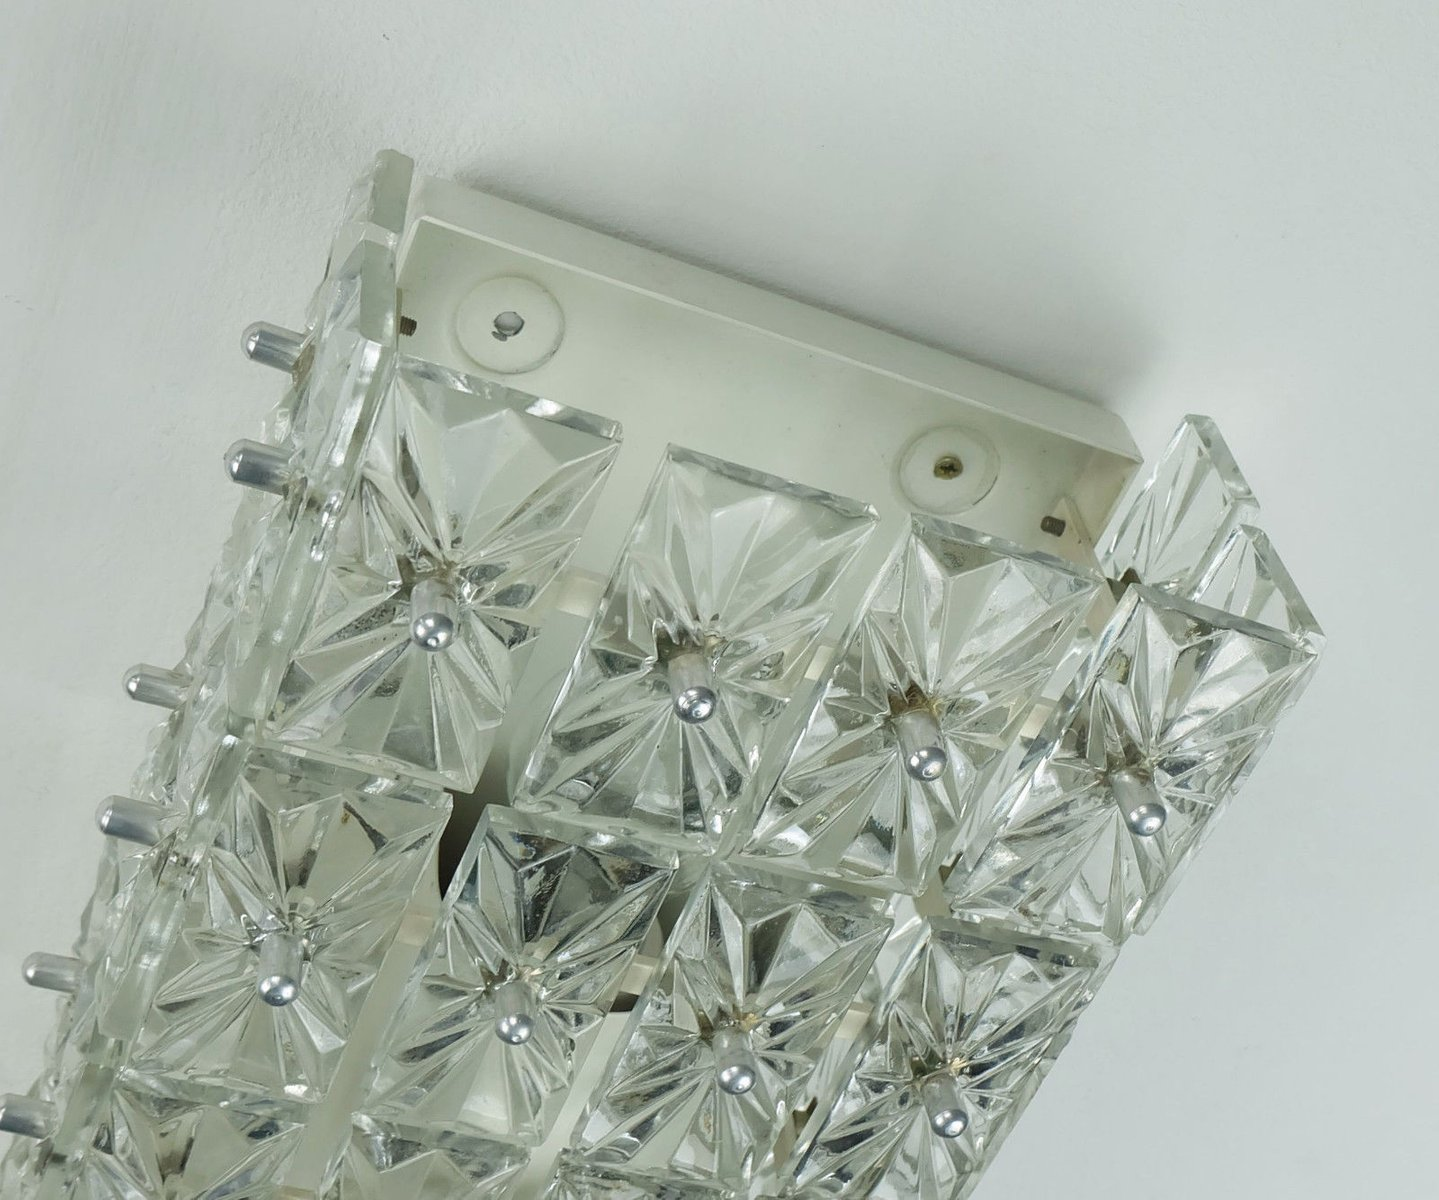 Faceted Glass Prism Wall Sconce, 1960s for sale at Pamono